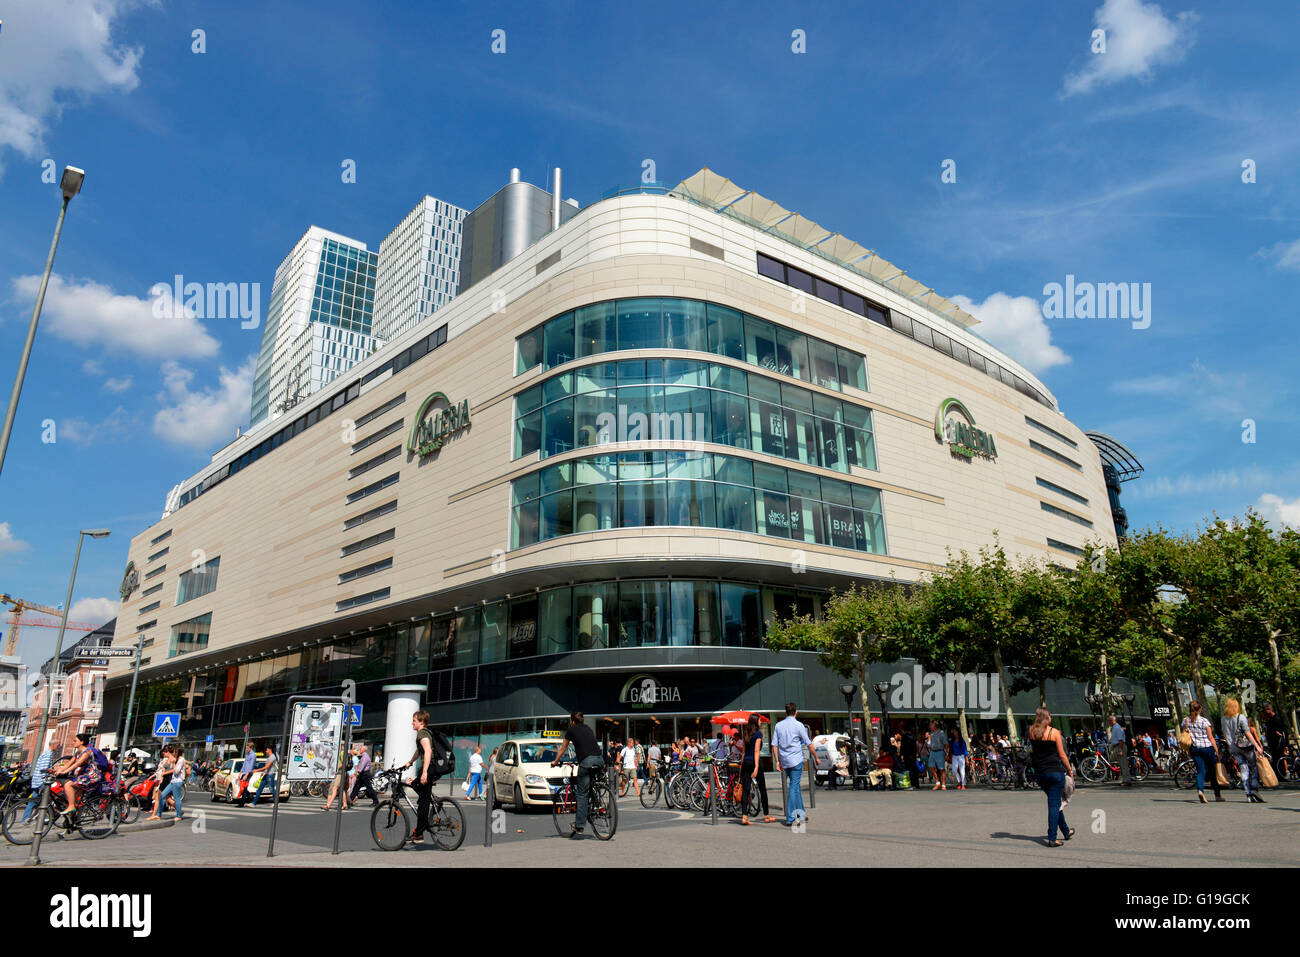 Outdoor Geschäft Frankfurt Galeria Kaufhof, Zeil, Frankfurt On The Main, Hesse, Germany Stock Photo - Alamy